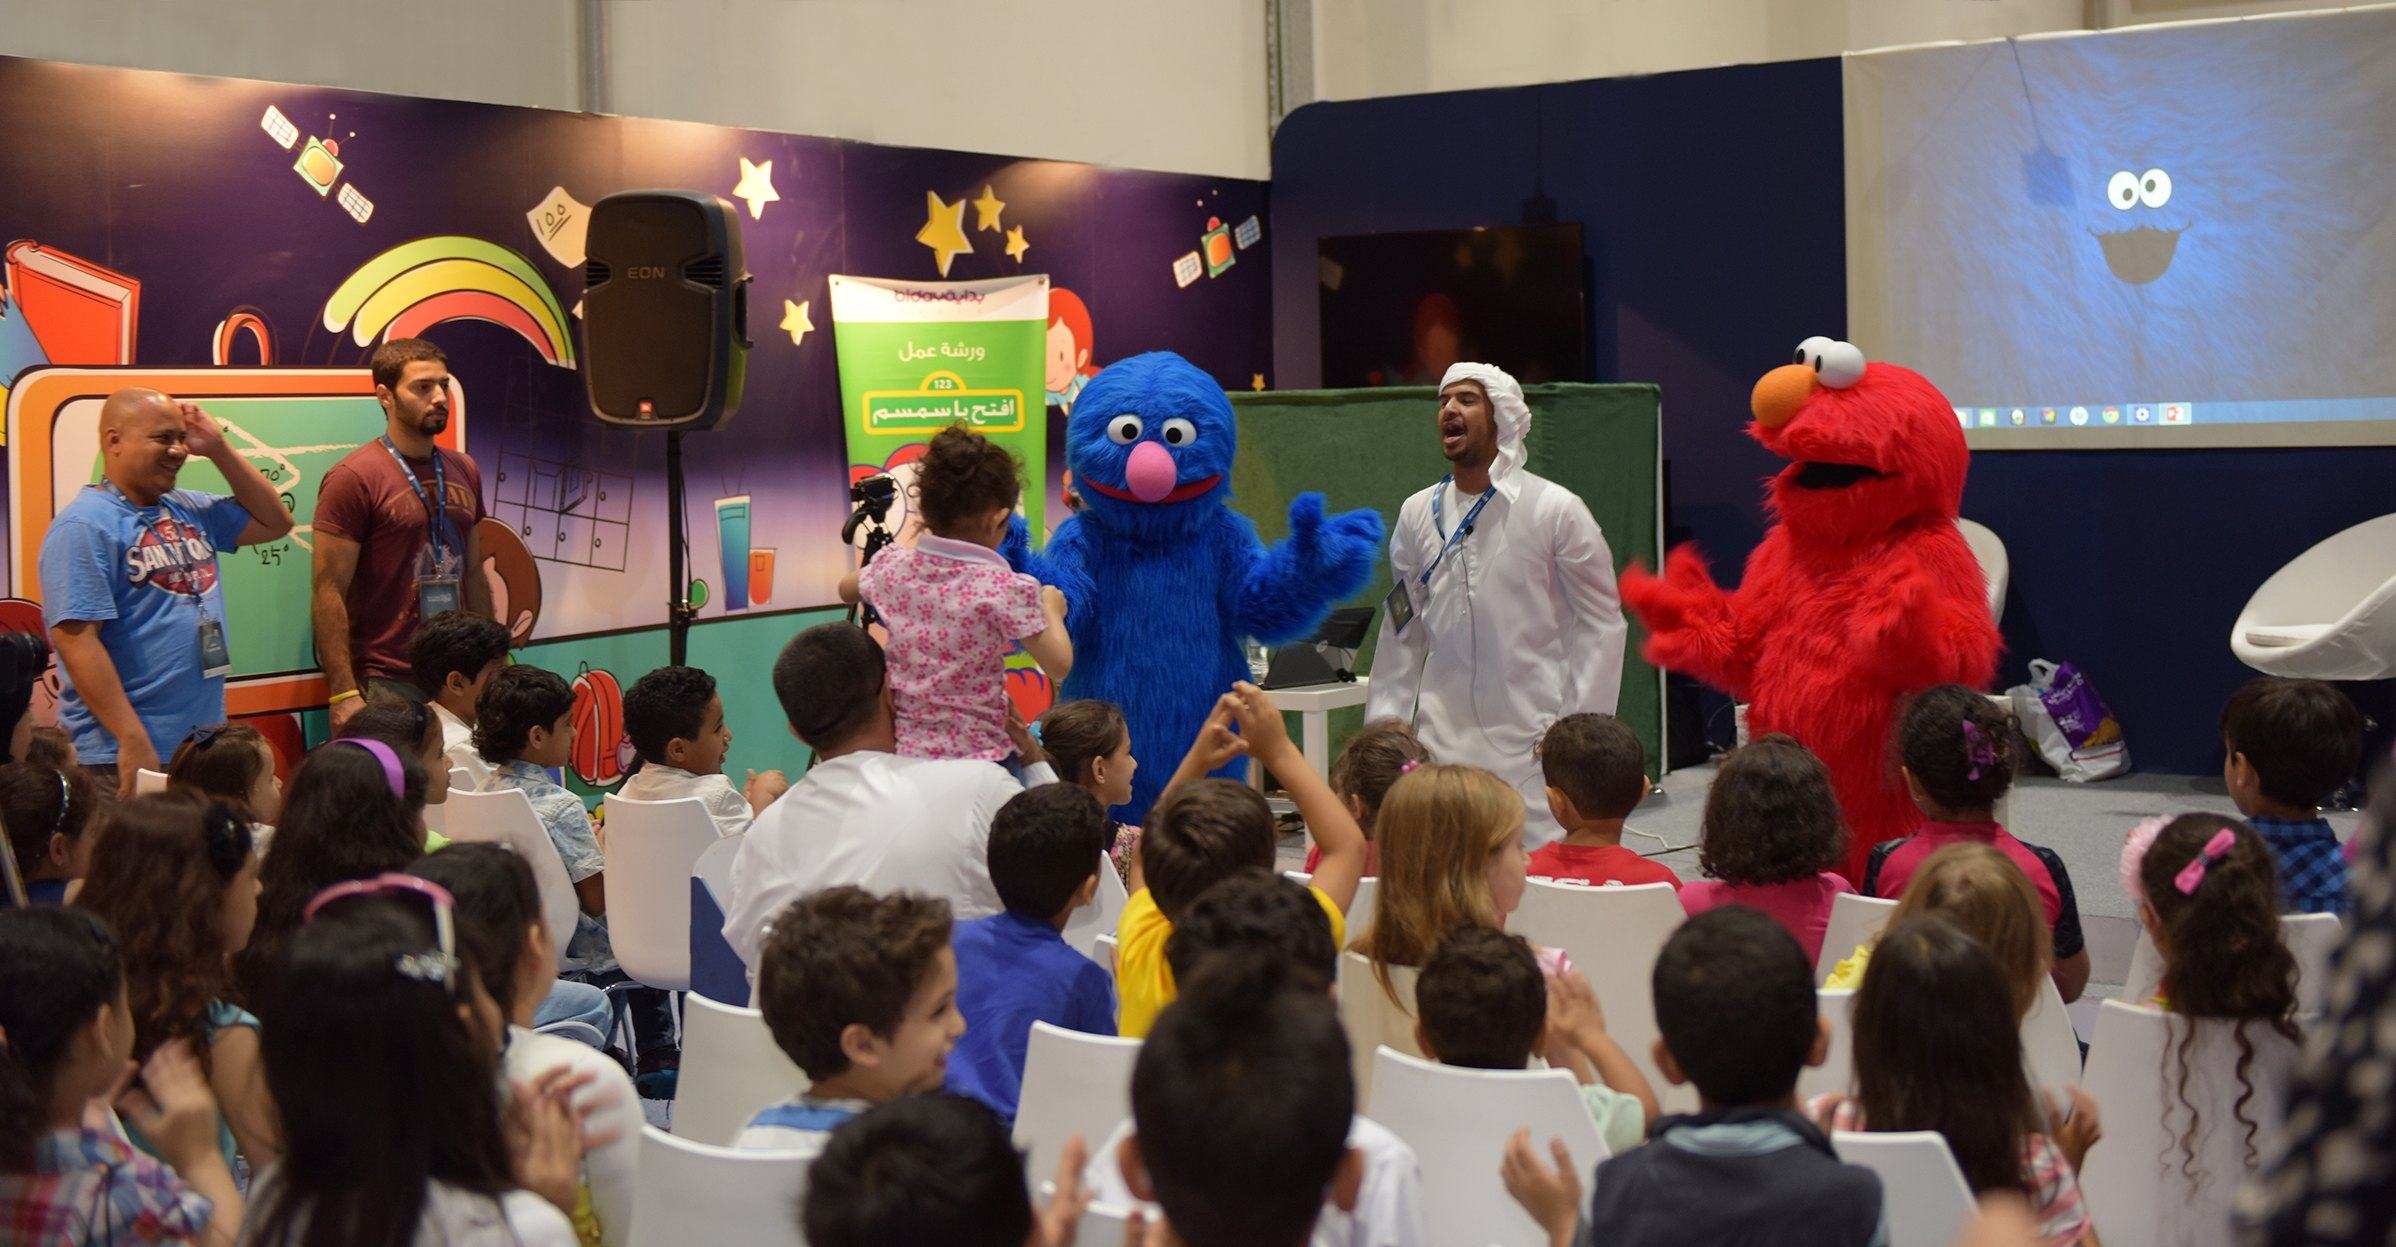 Hundreds of children captivated by the new Iftah Ya Simsim Muppet, Shams, at Abu Dhabi International Book Fair